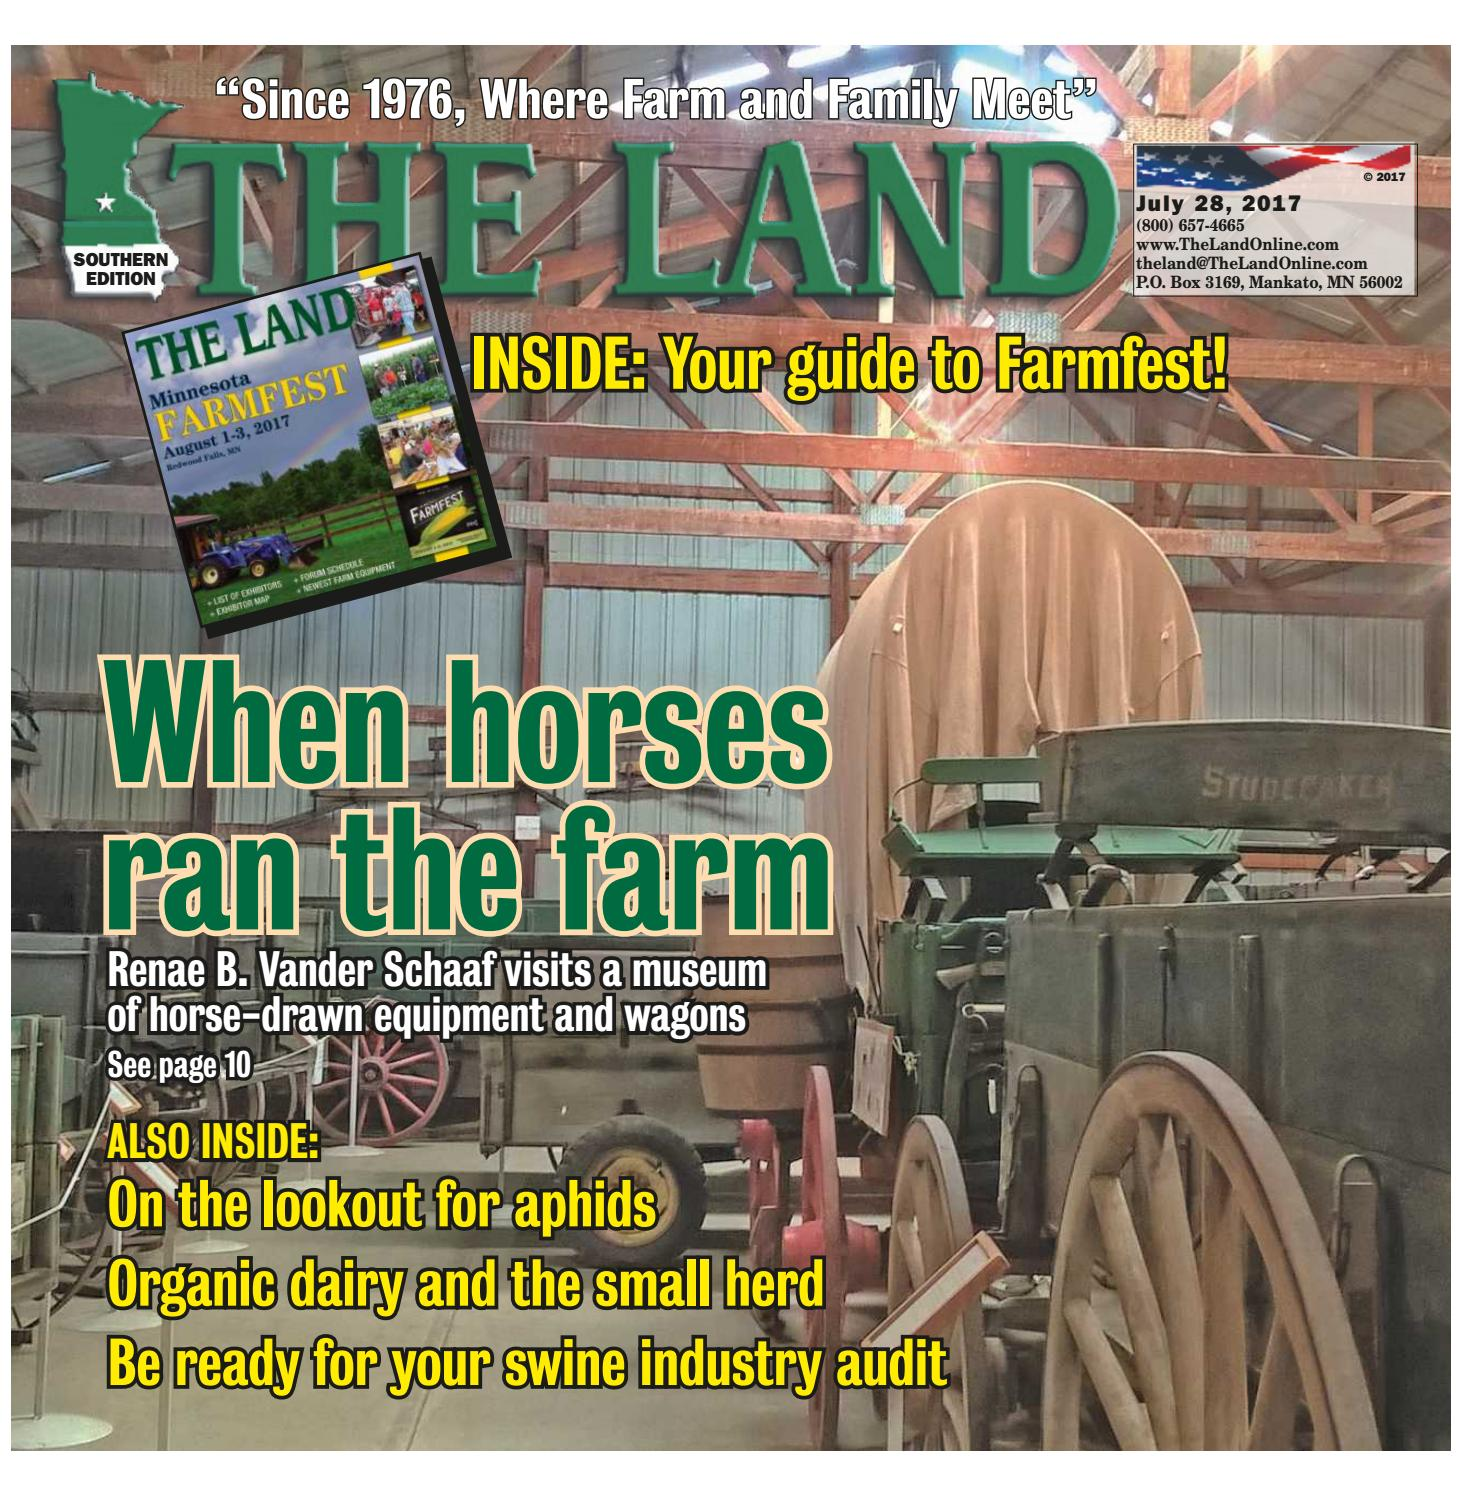 THE LAND ~ July 28, 2017 ~ Southern Edition by The Land - issuu